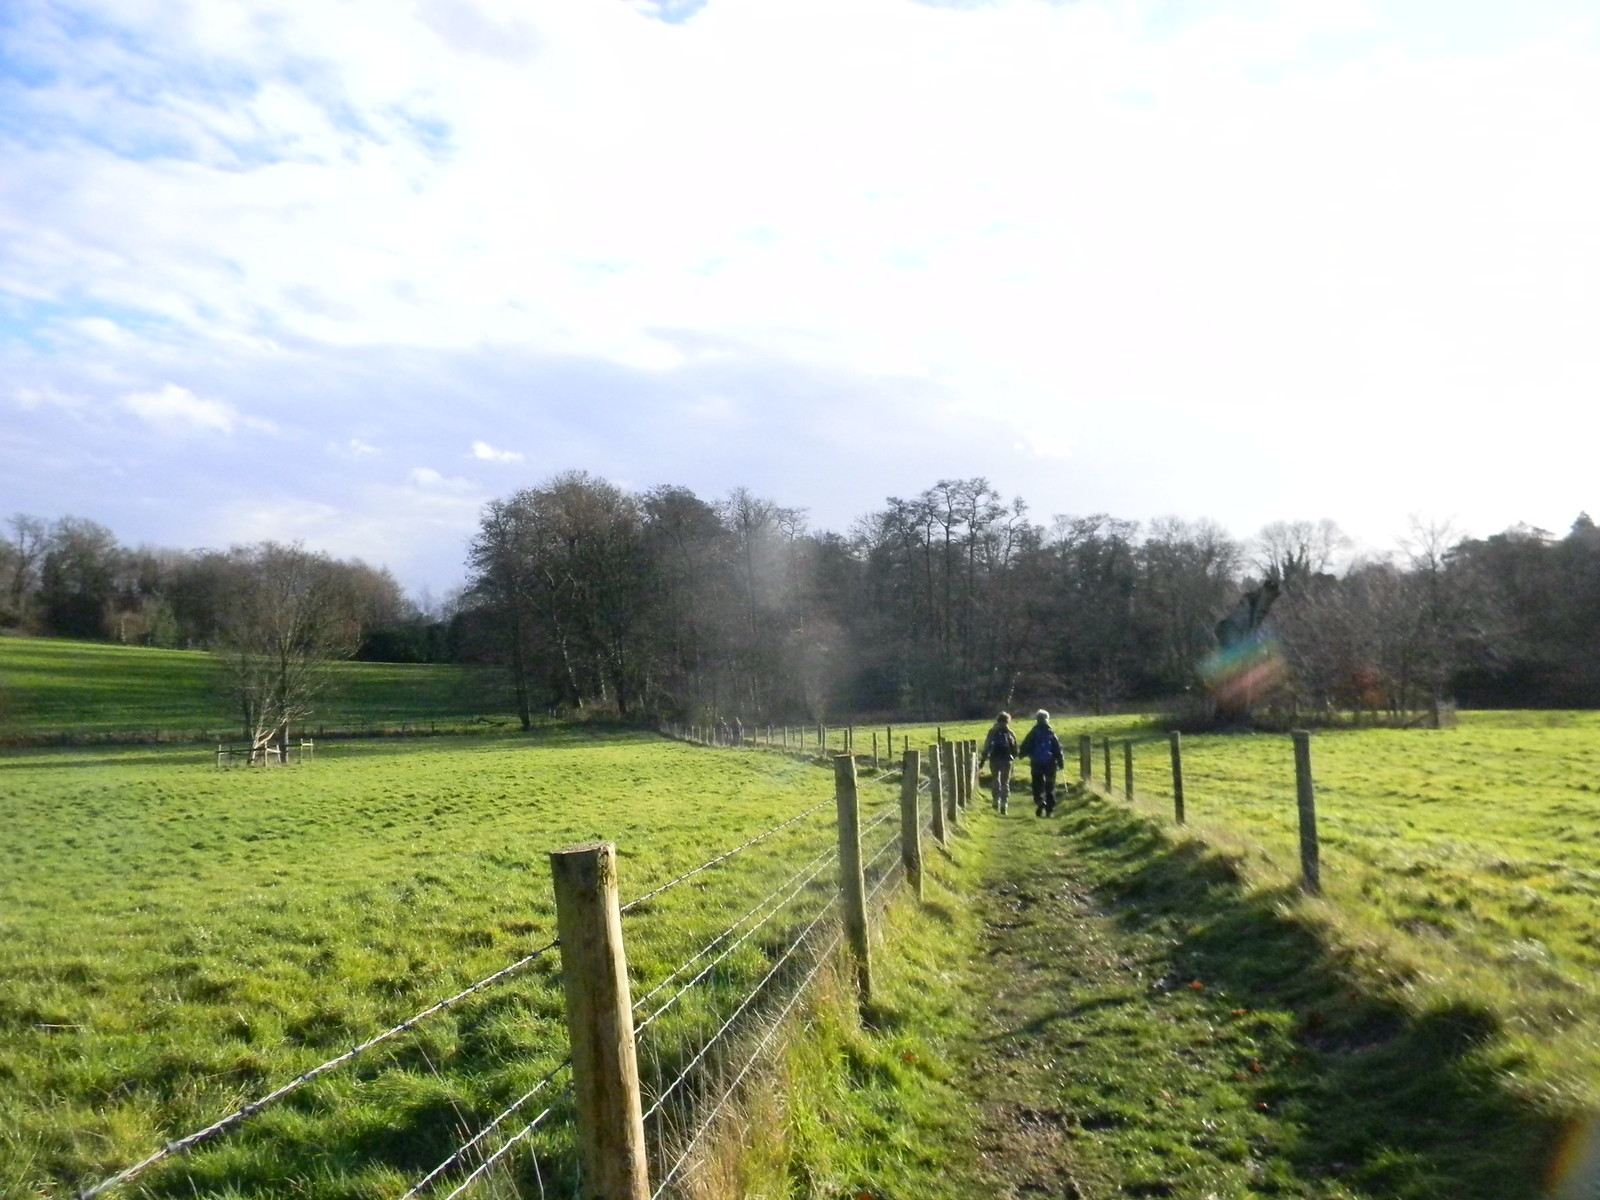 Not so tricky not-a-slope Woldingham to Oxted - short walk